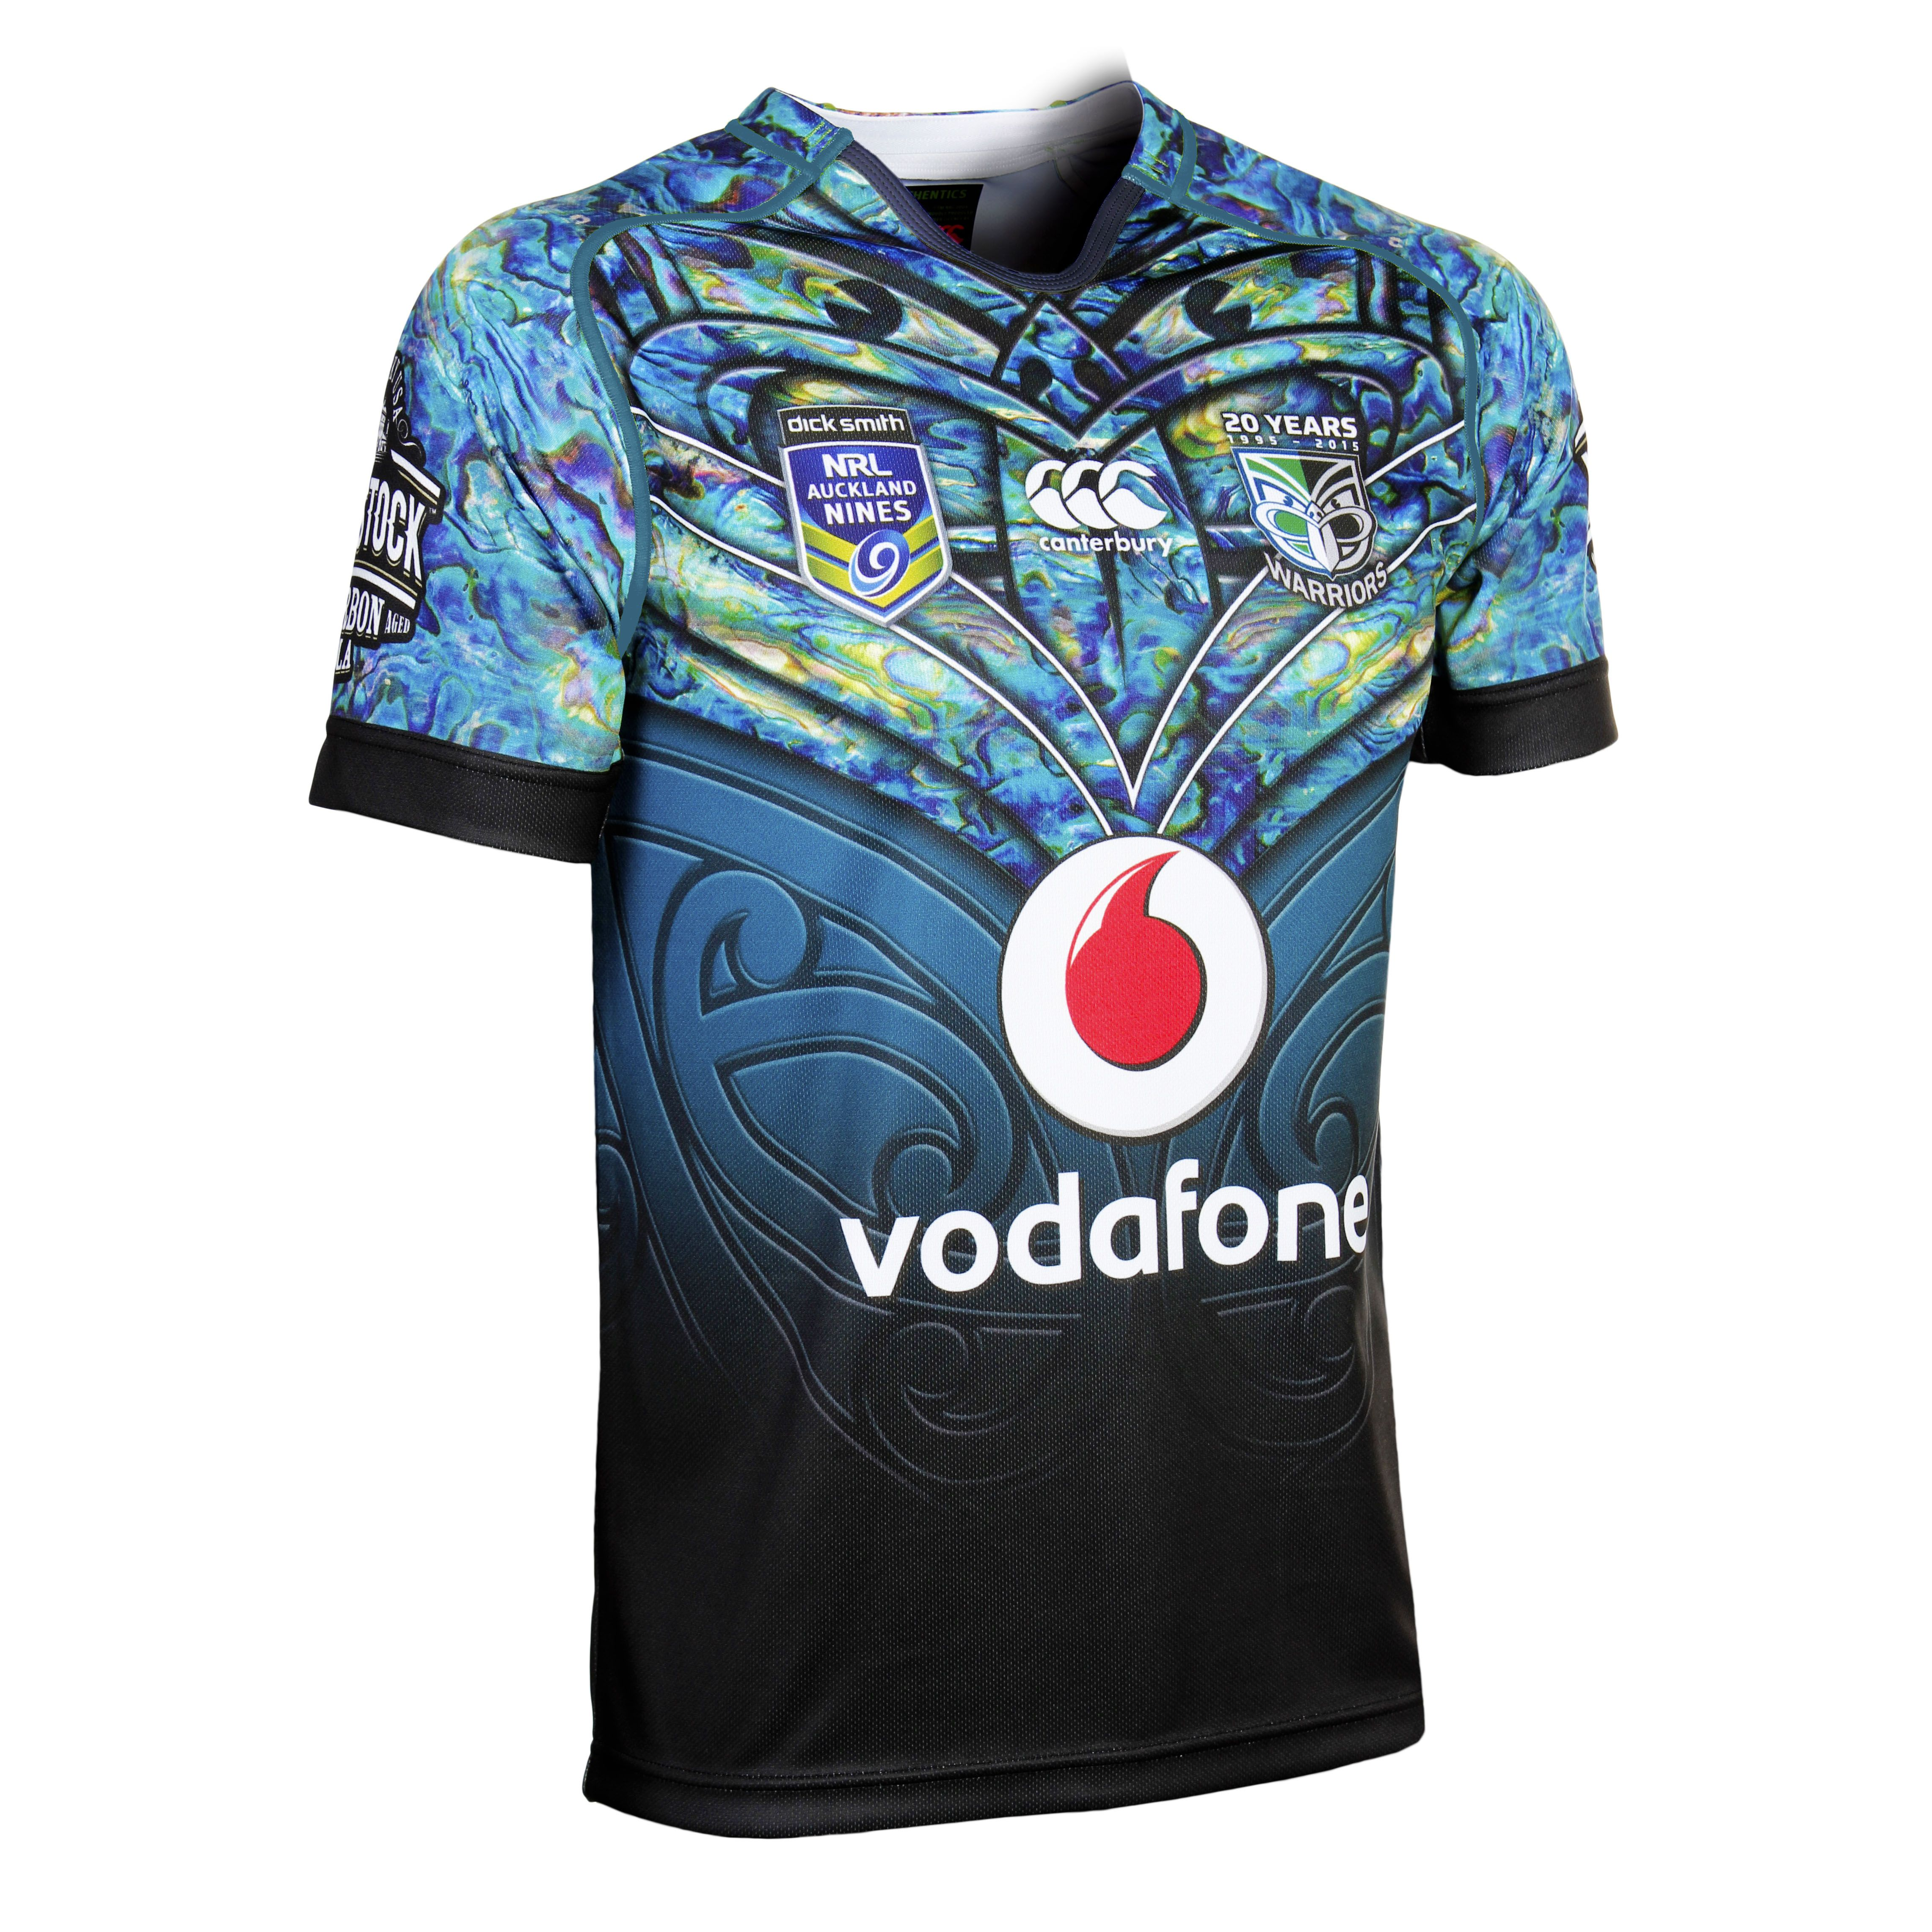 Front view of the  Tangaroa jersey. The design pays homage to Tangaroa 2d01bf5c2d169